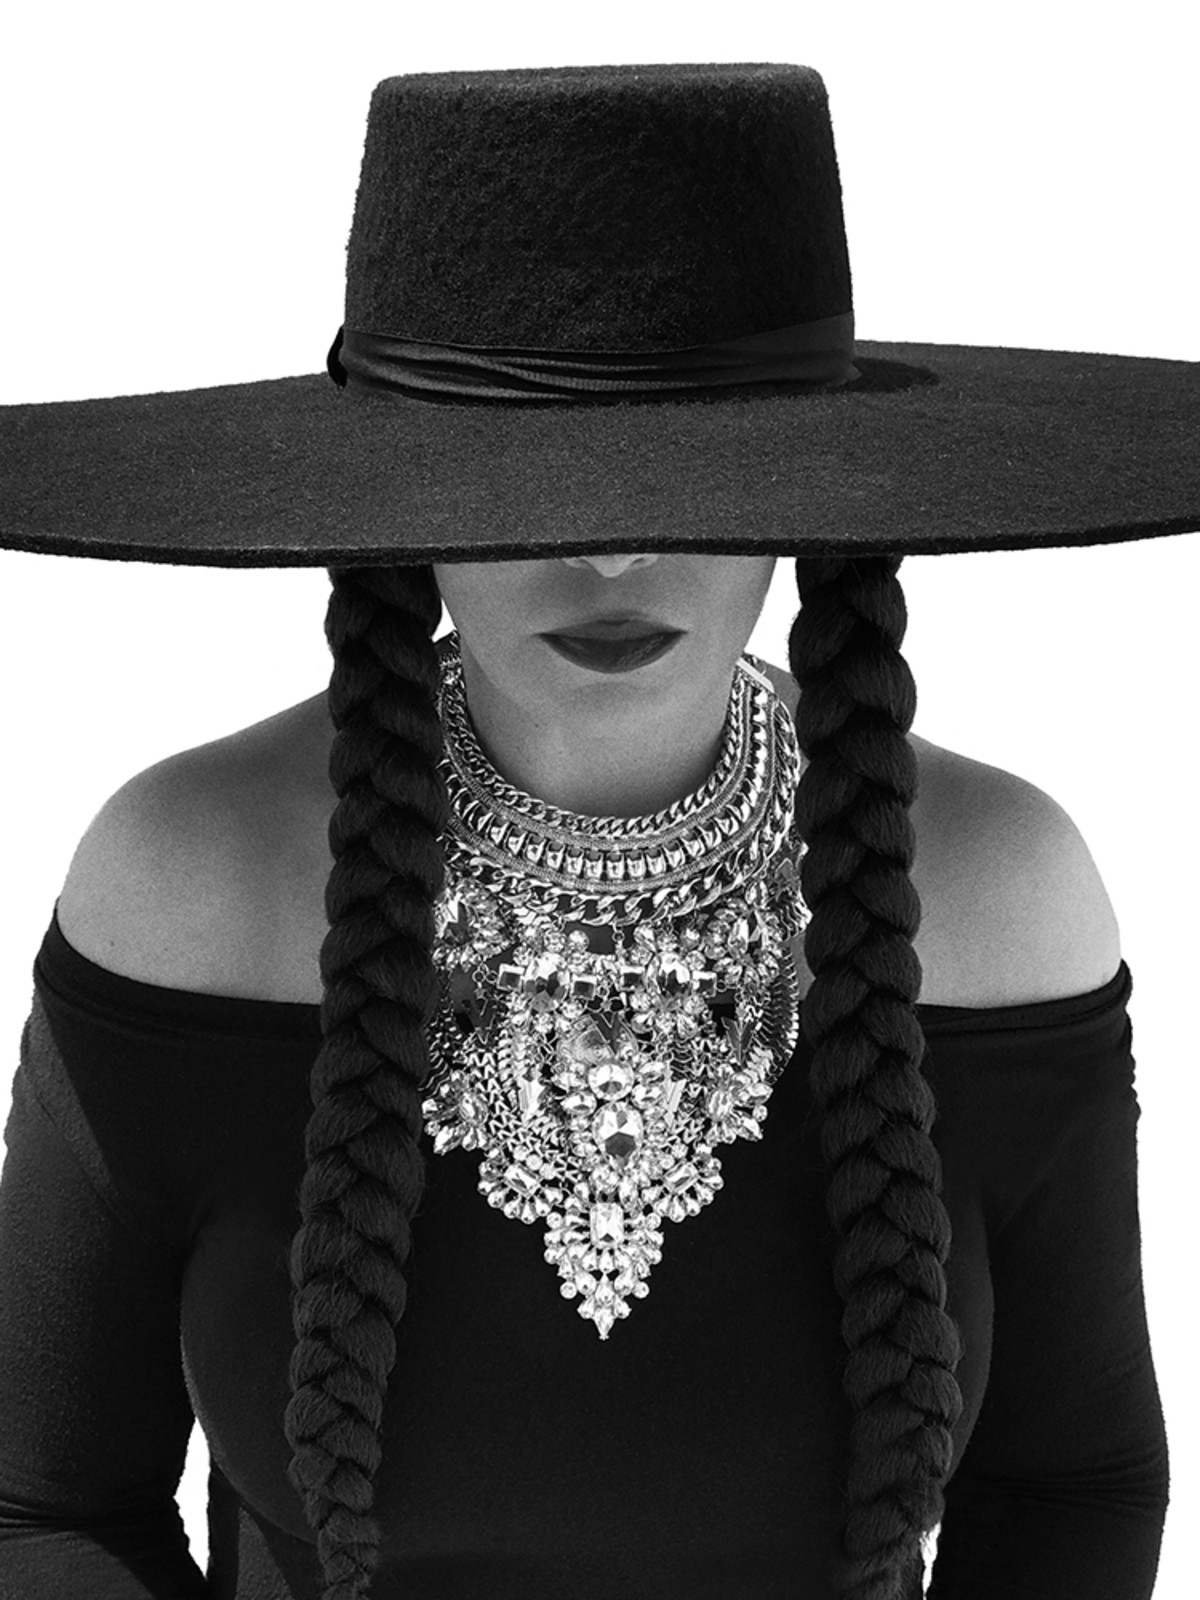 Tina Lawson as Beyonce for Hurricane Relief funds